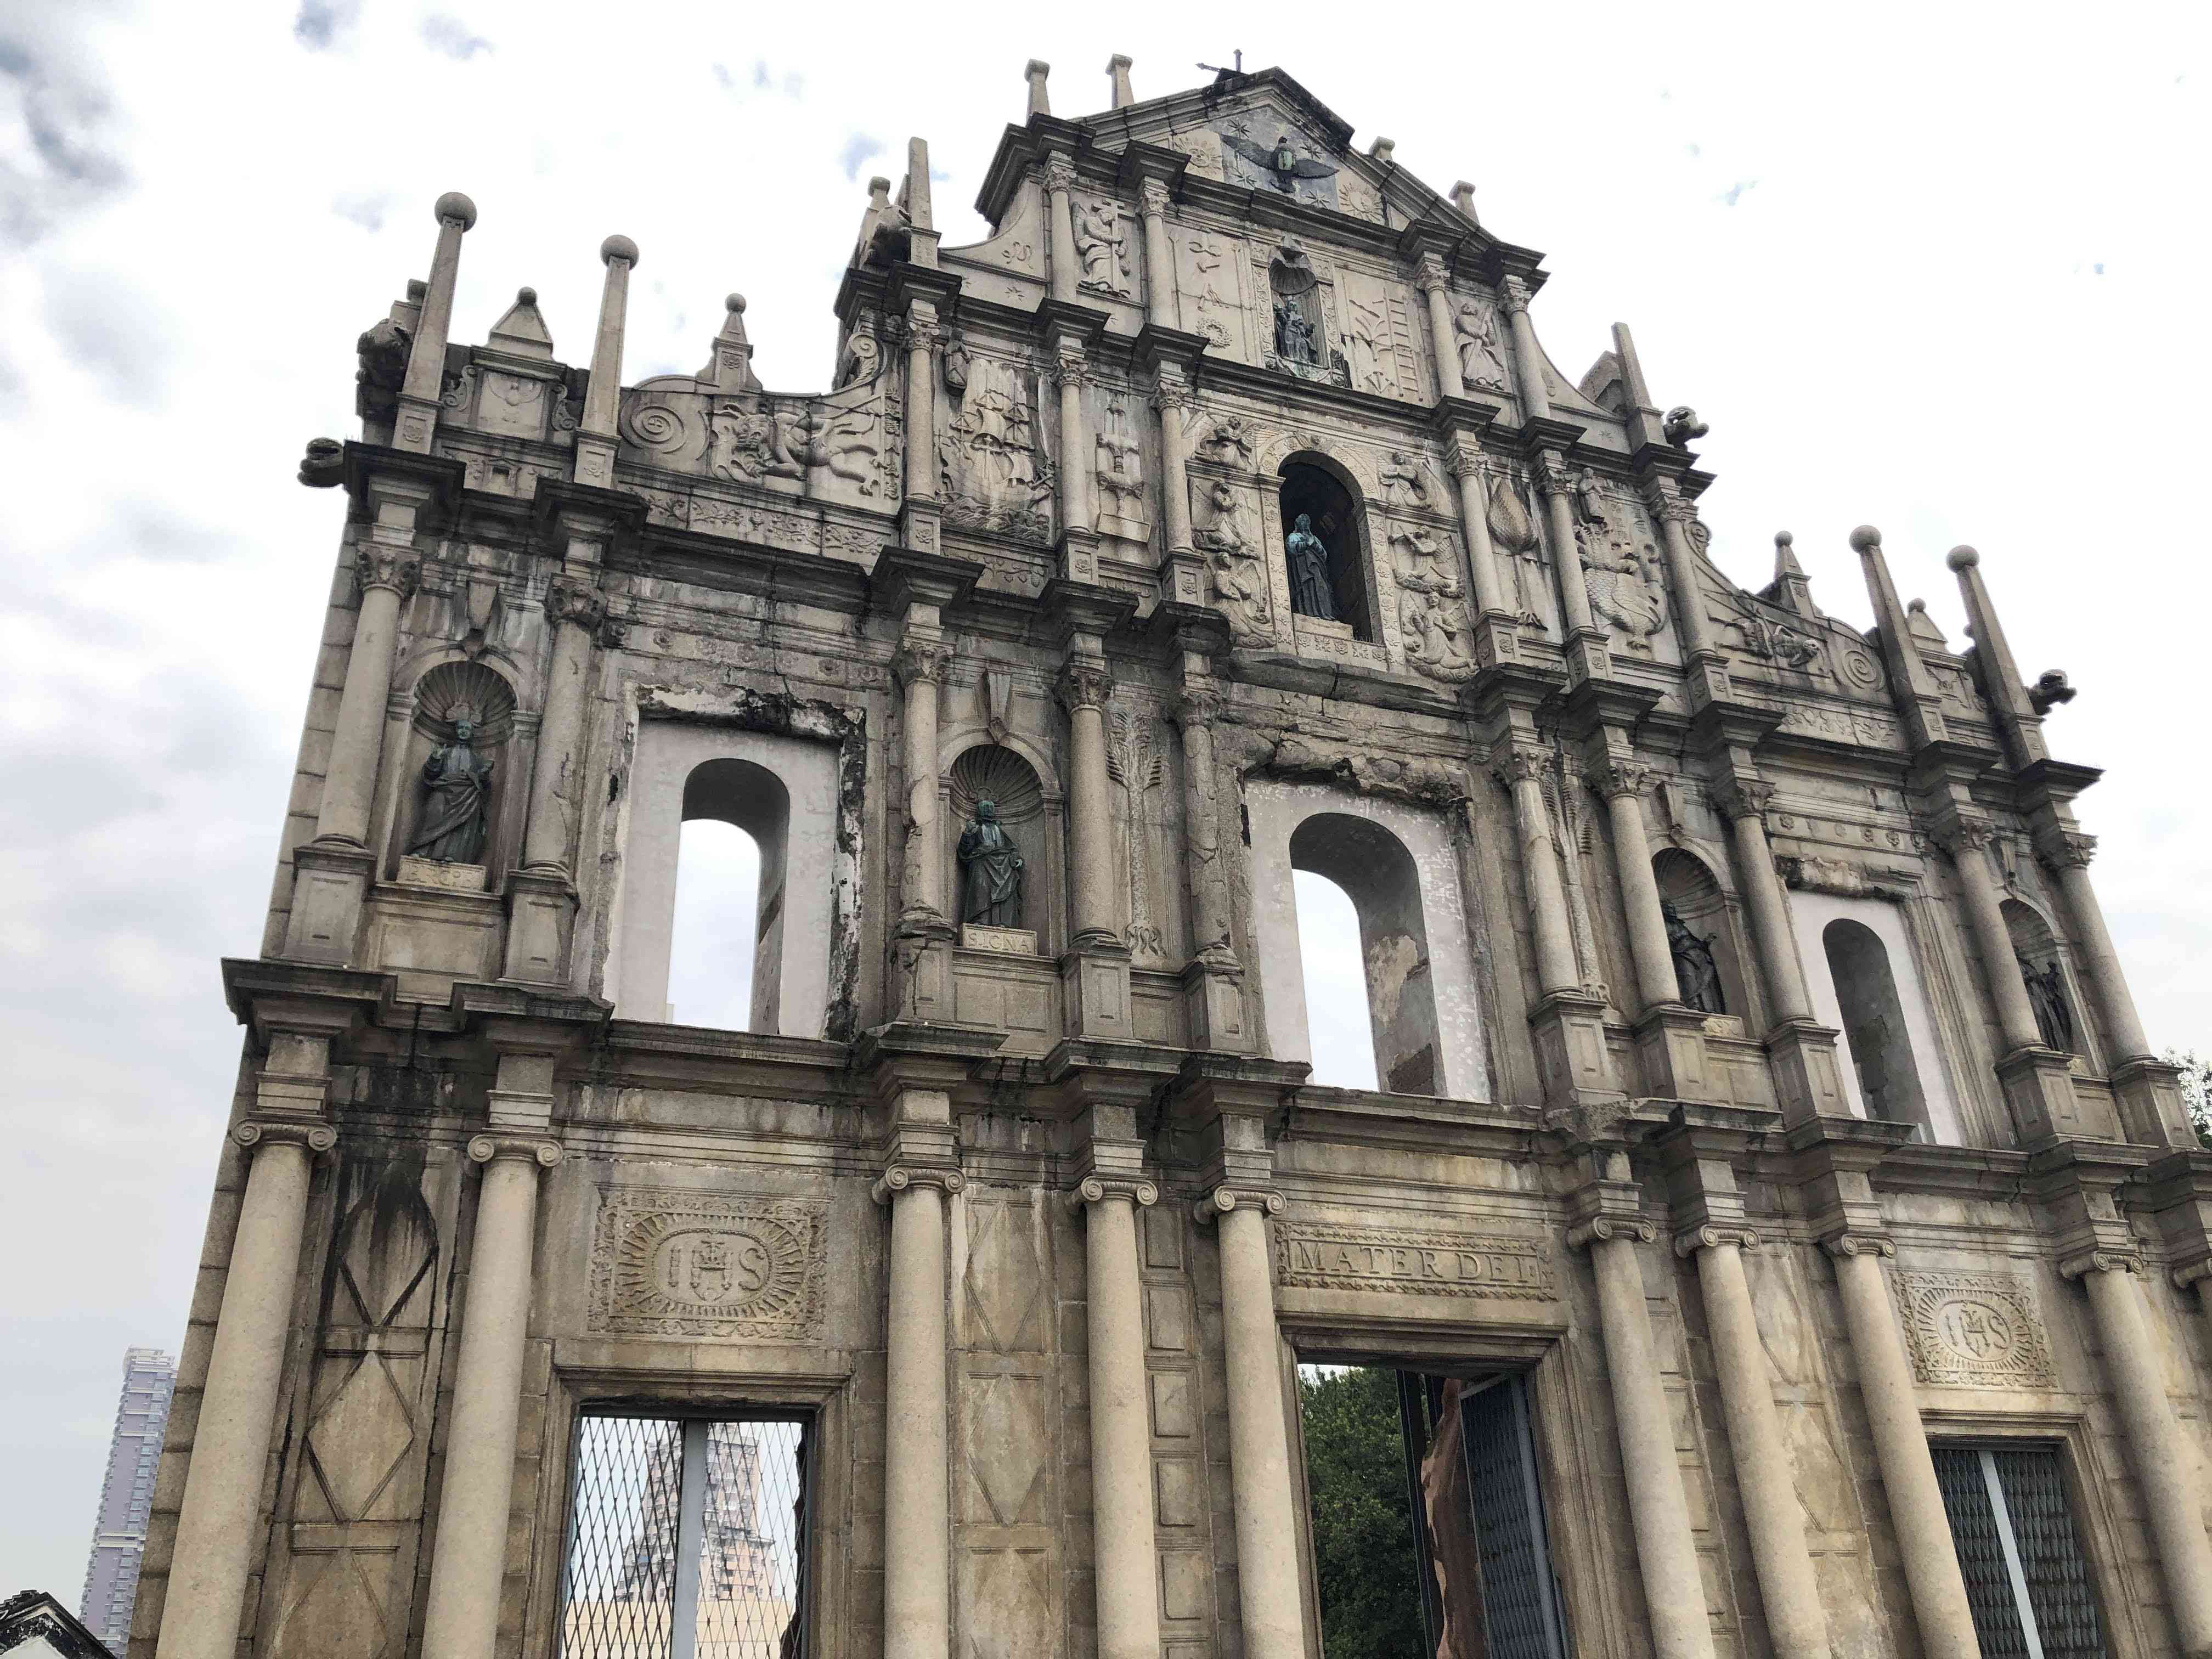 front edifice of the Ruins of St. Paul's in Macao